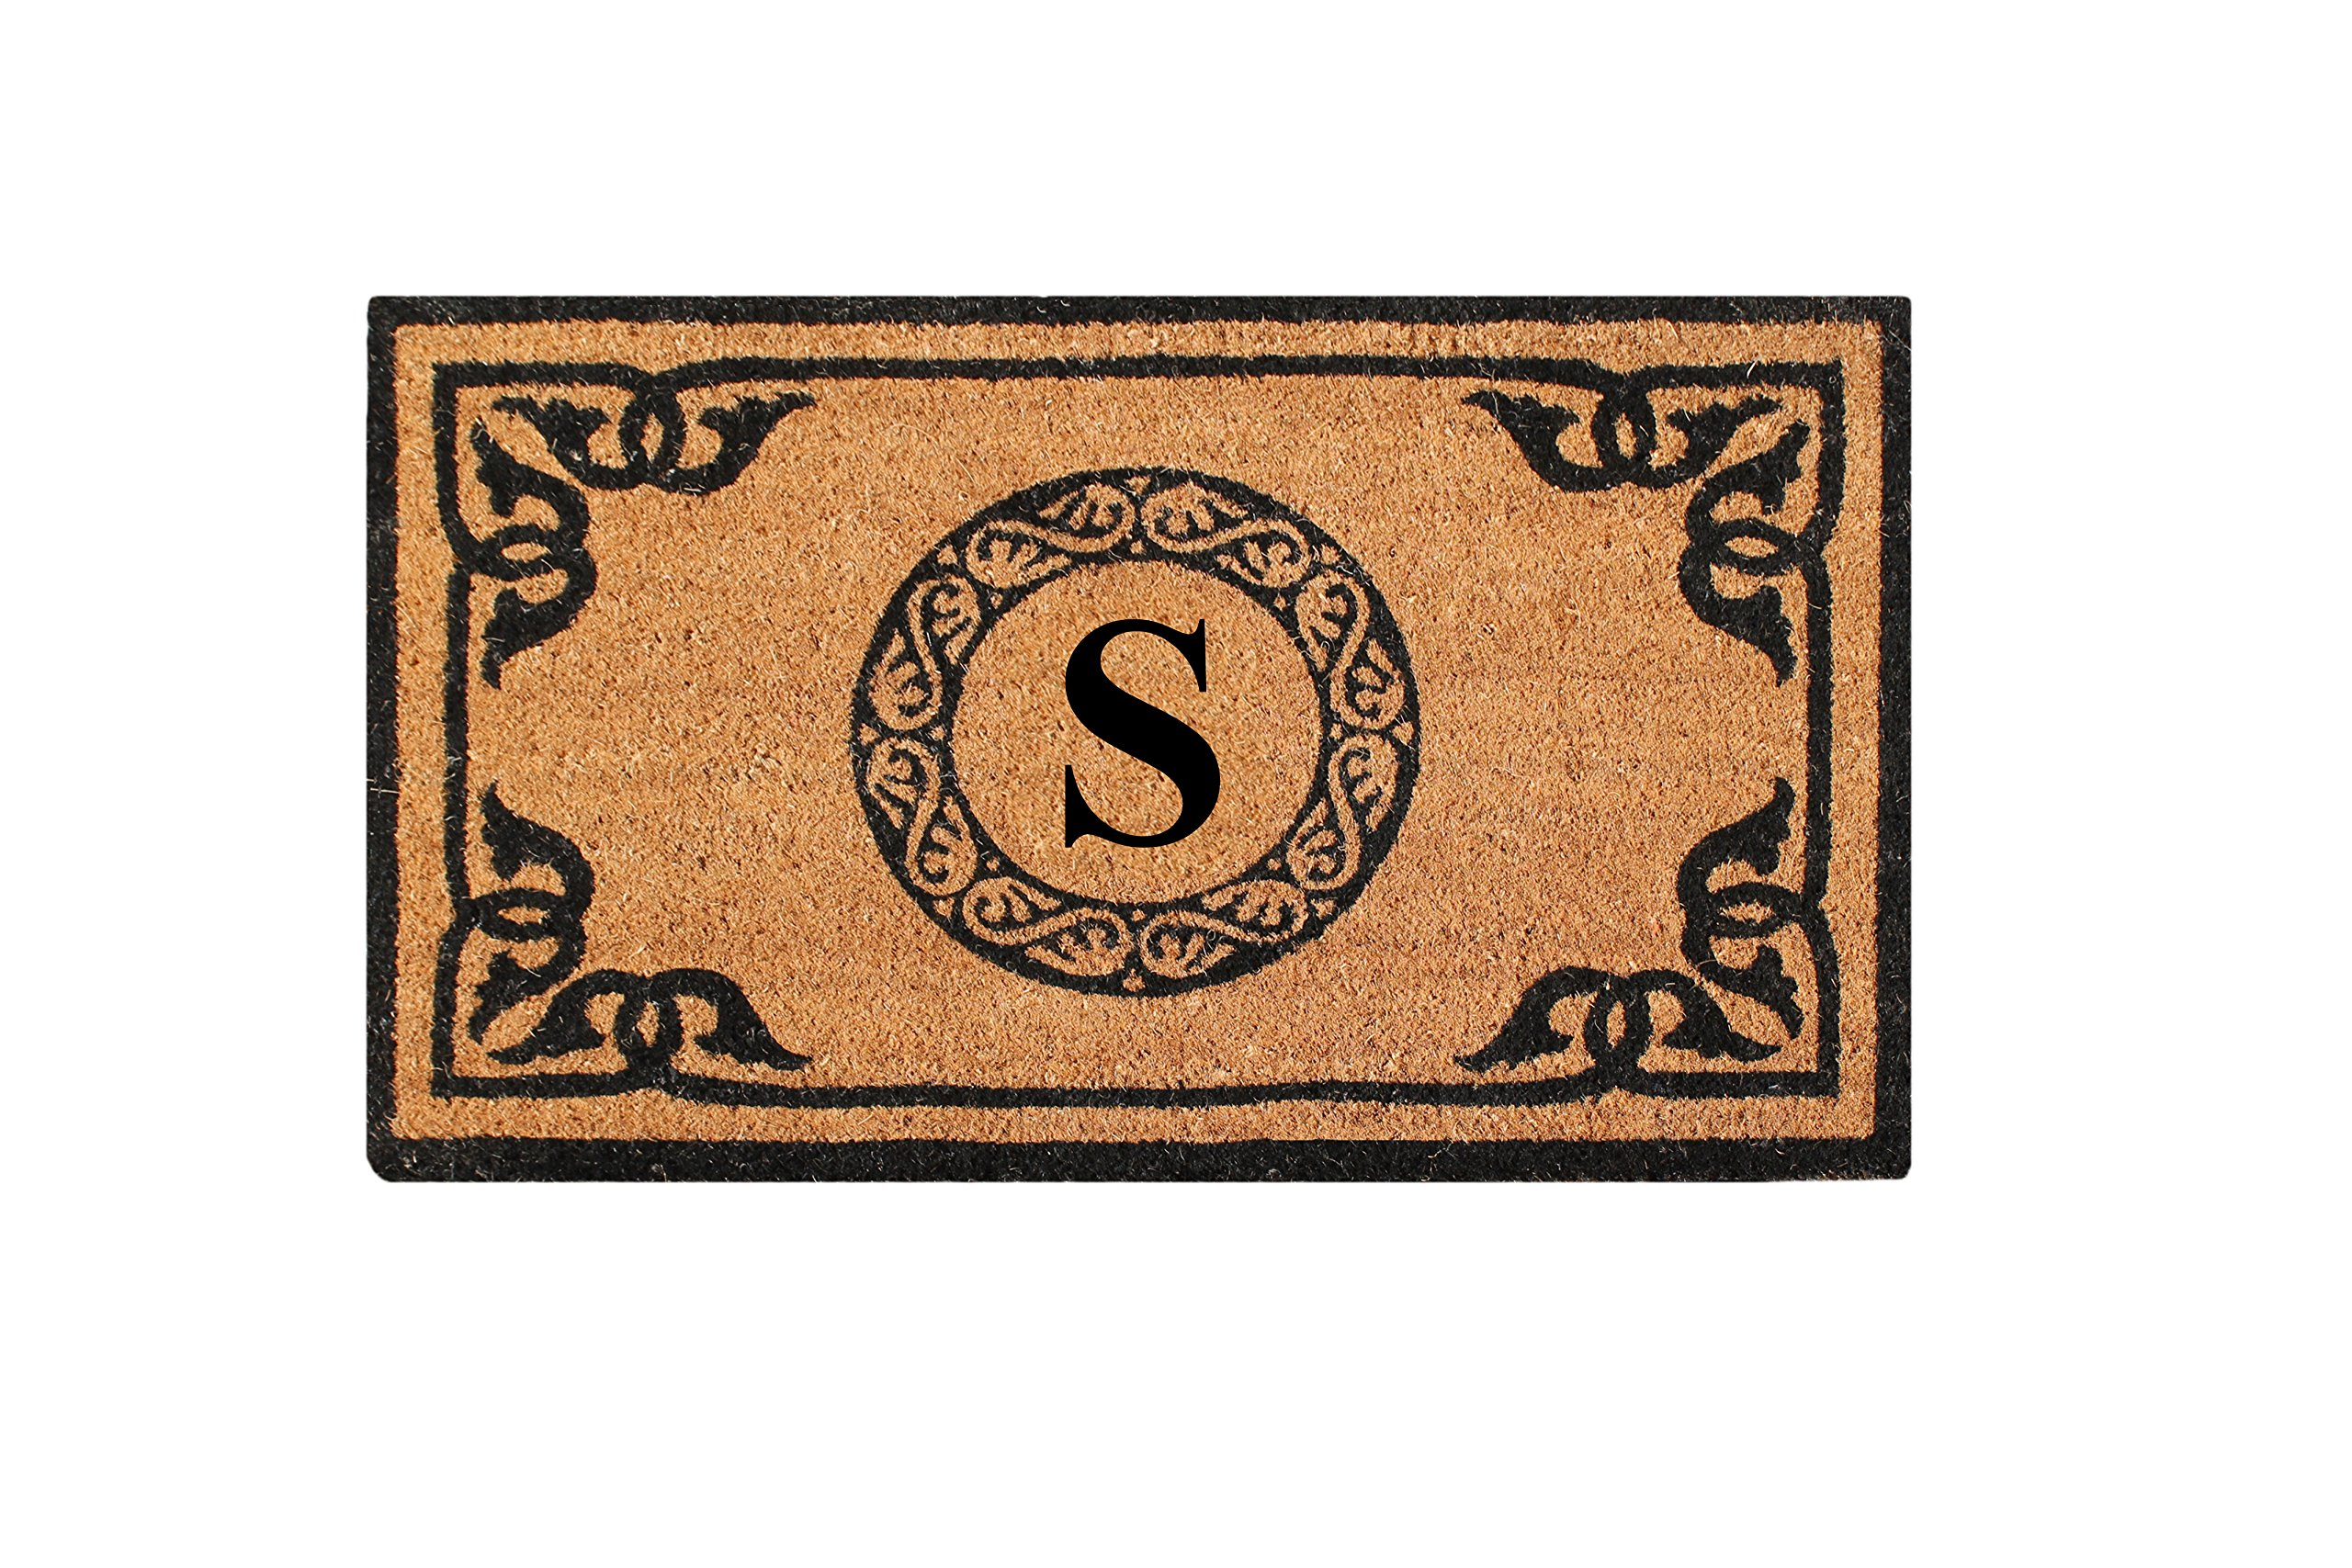 A1 Home Collections PT3006S First Impression Hand Crafted by Artisans Geneva Monogrammed Entry Doormat, 24''X39''